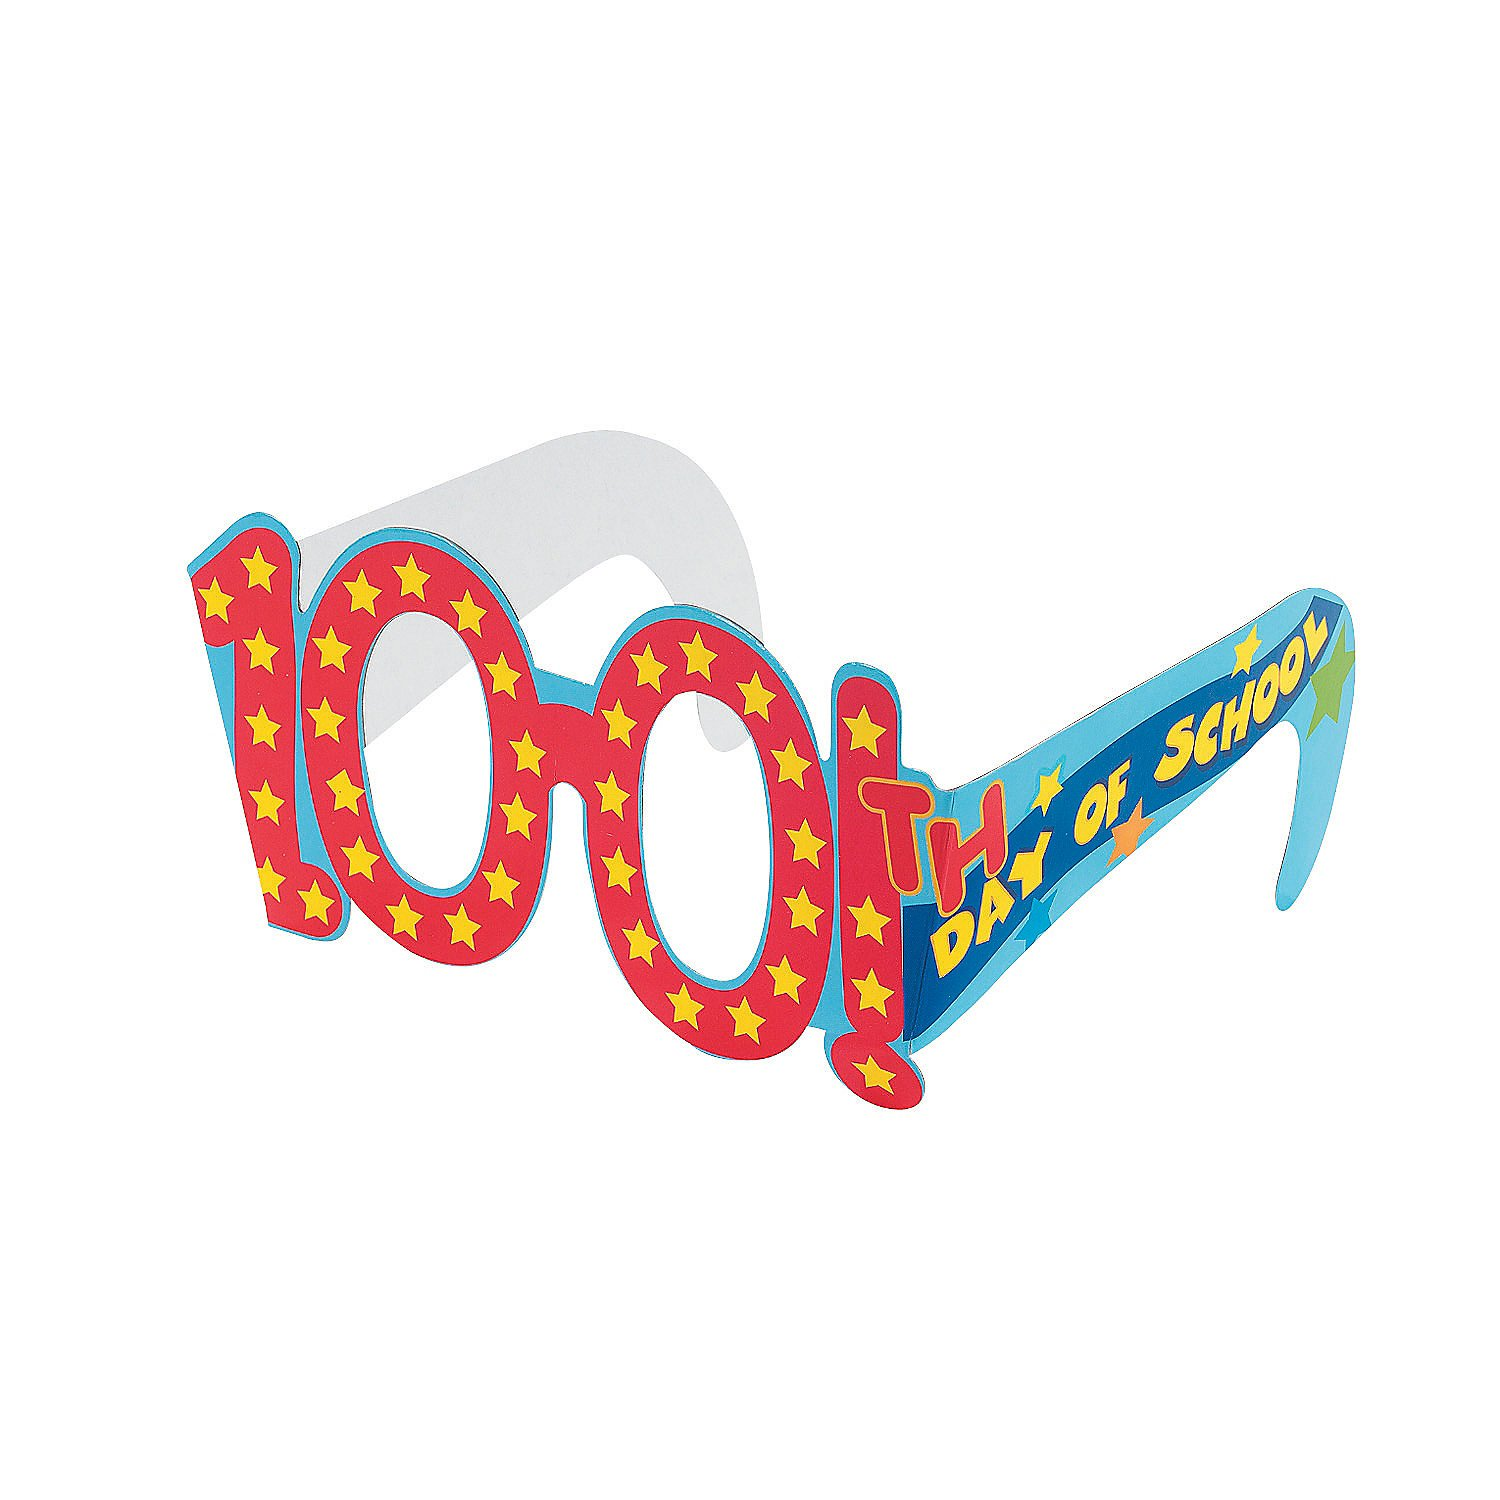 Amazon.com: 100th Day of School Cardboard Glasses: Health & Personal ... banner library